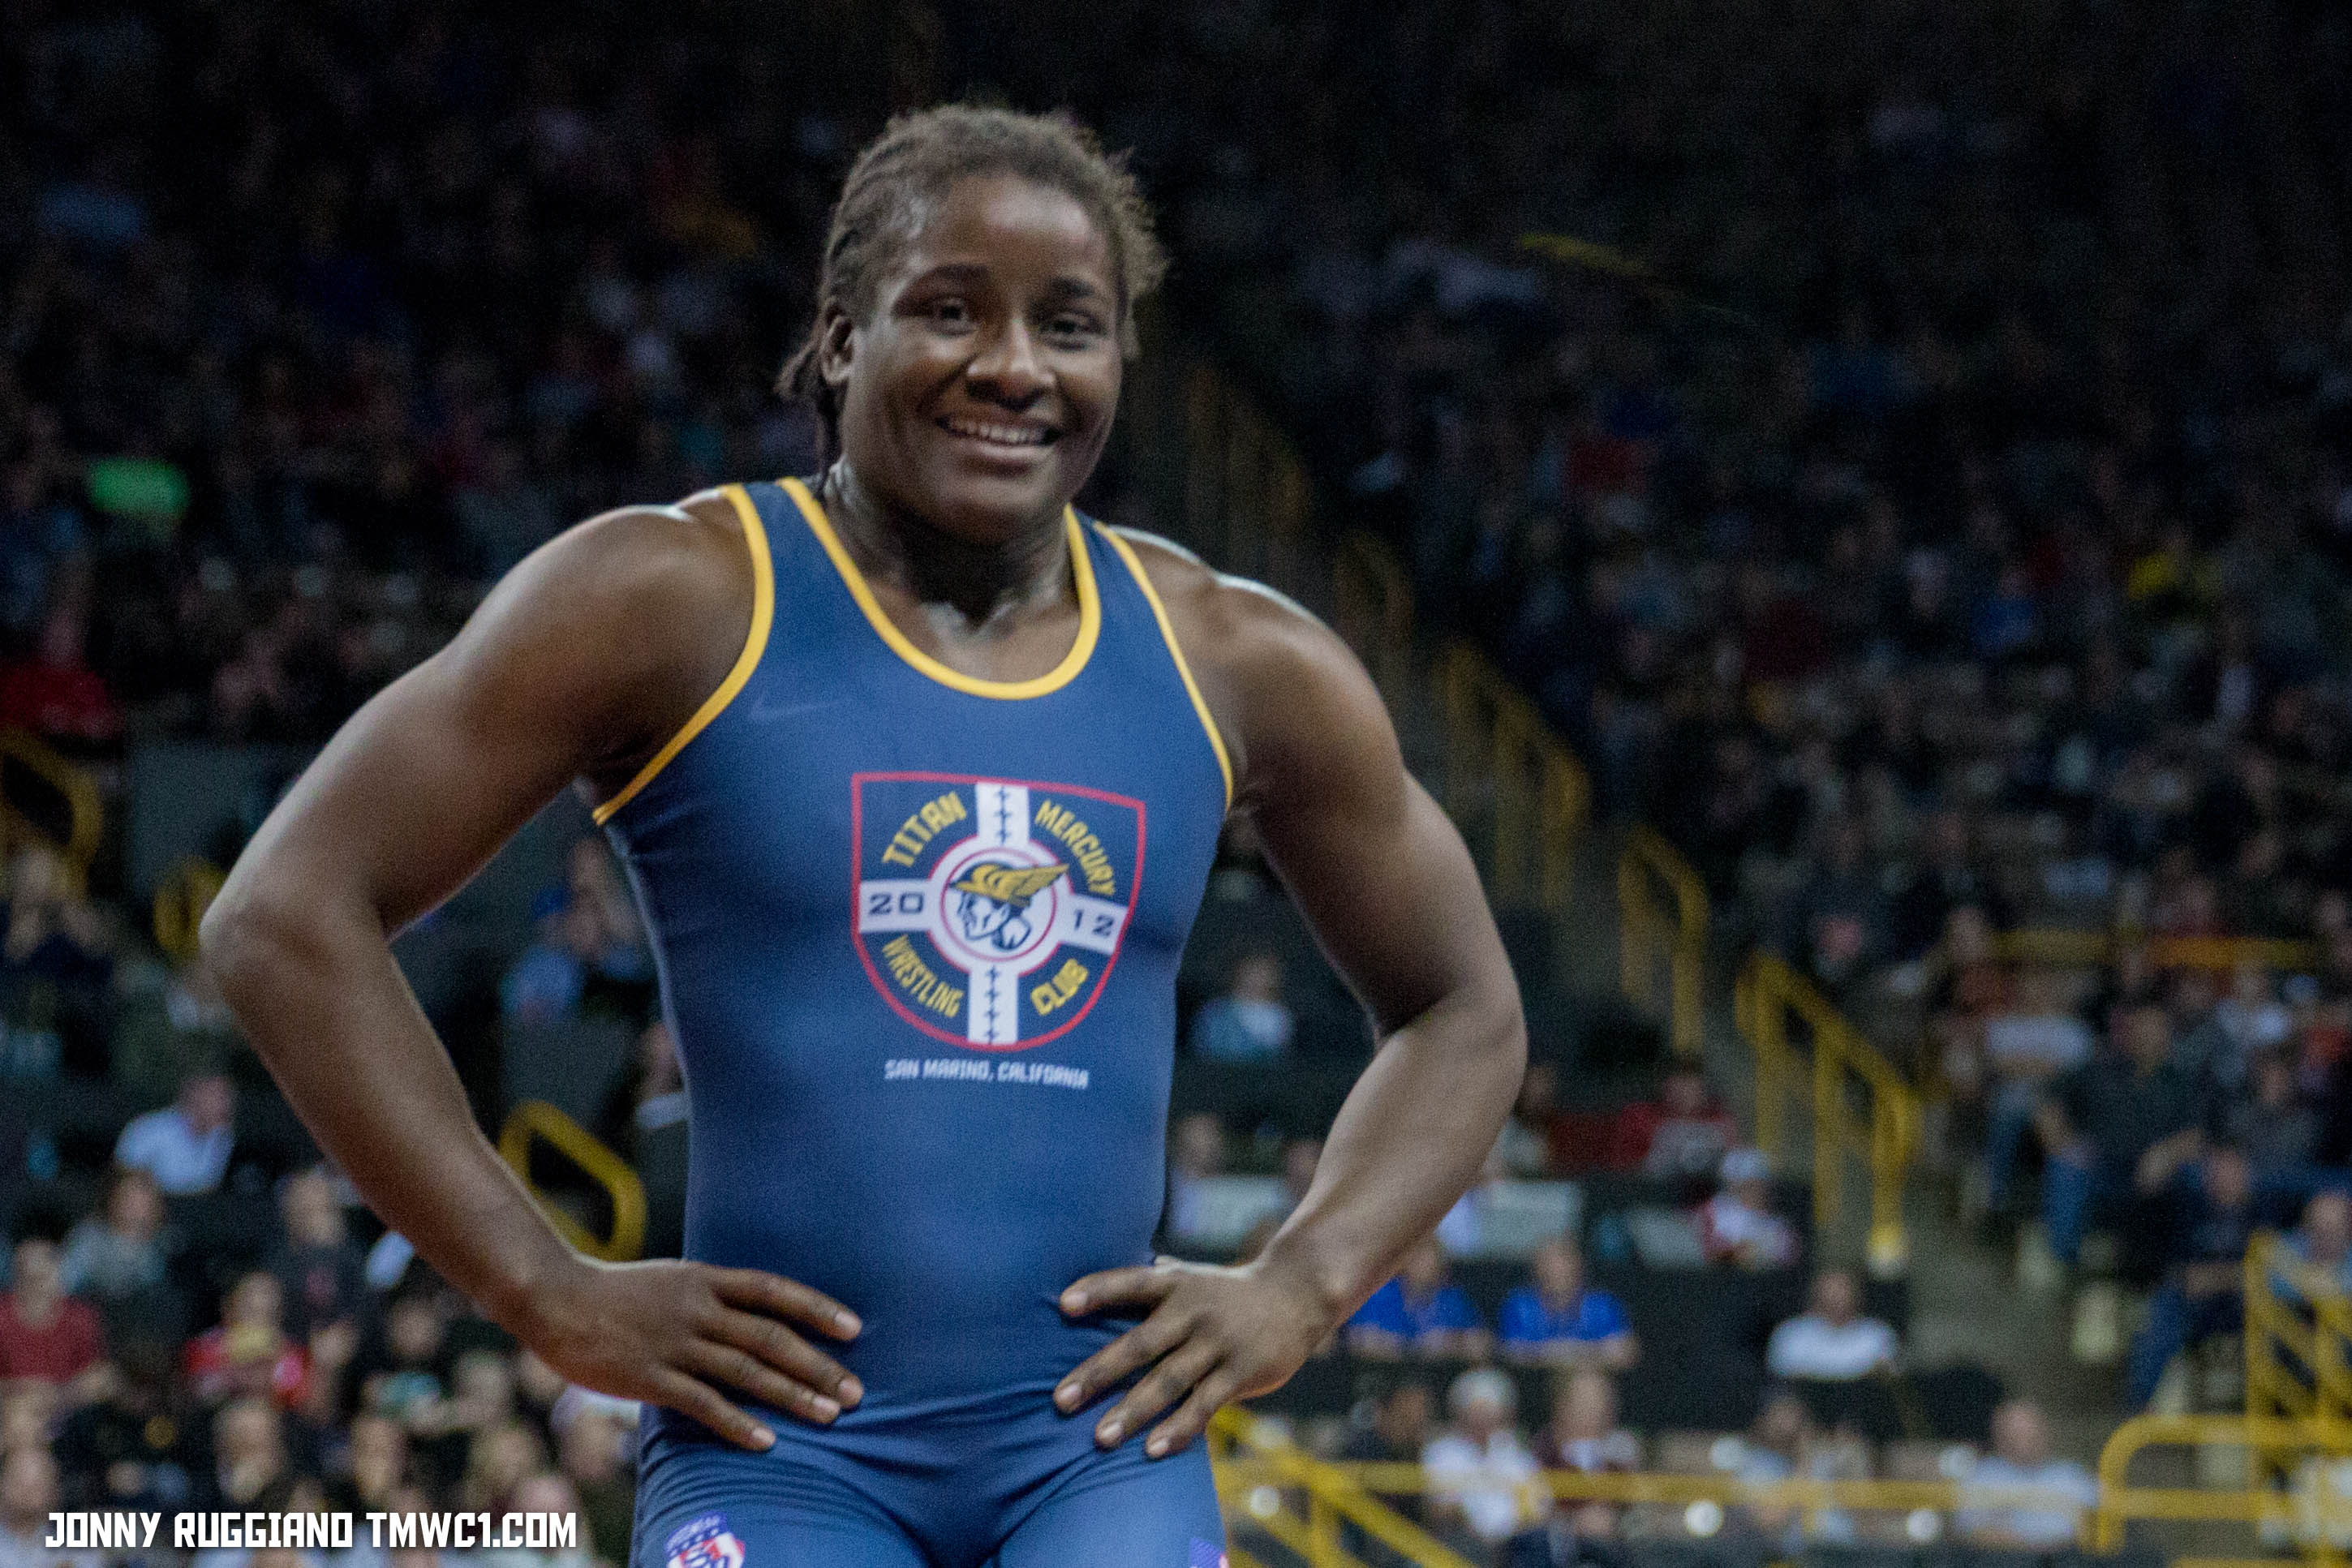 Mensah-Stock to go for gold at World Championships and qualifies her weight for Olympic Games